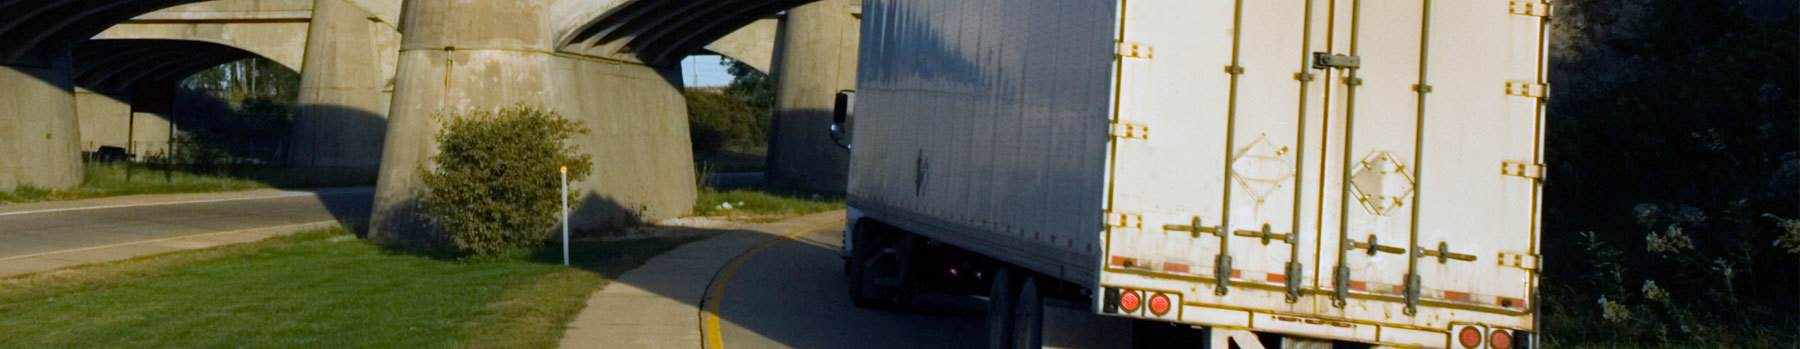 HERO-iSt_4282336_L_truck-going-under-the-bridge_SUPERLOAD-Bridge-Analysis